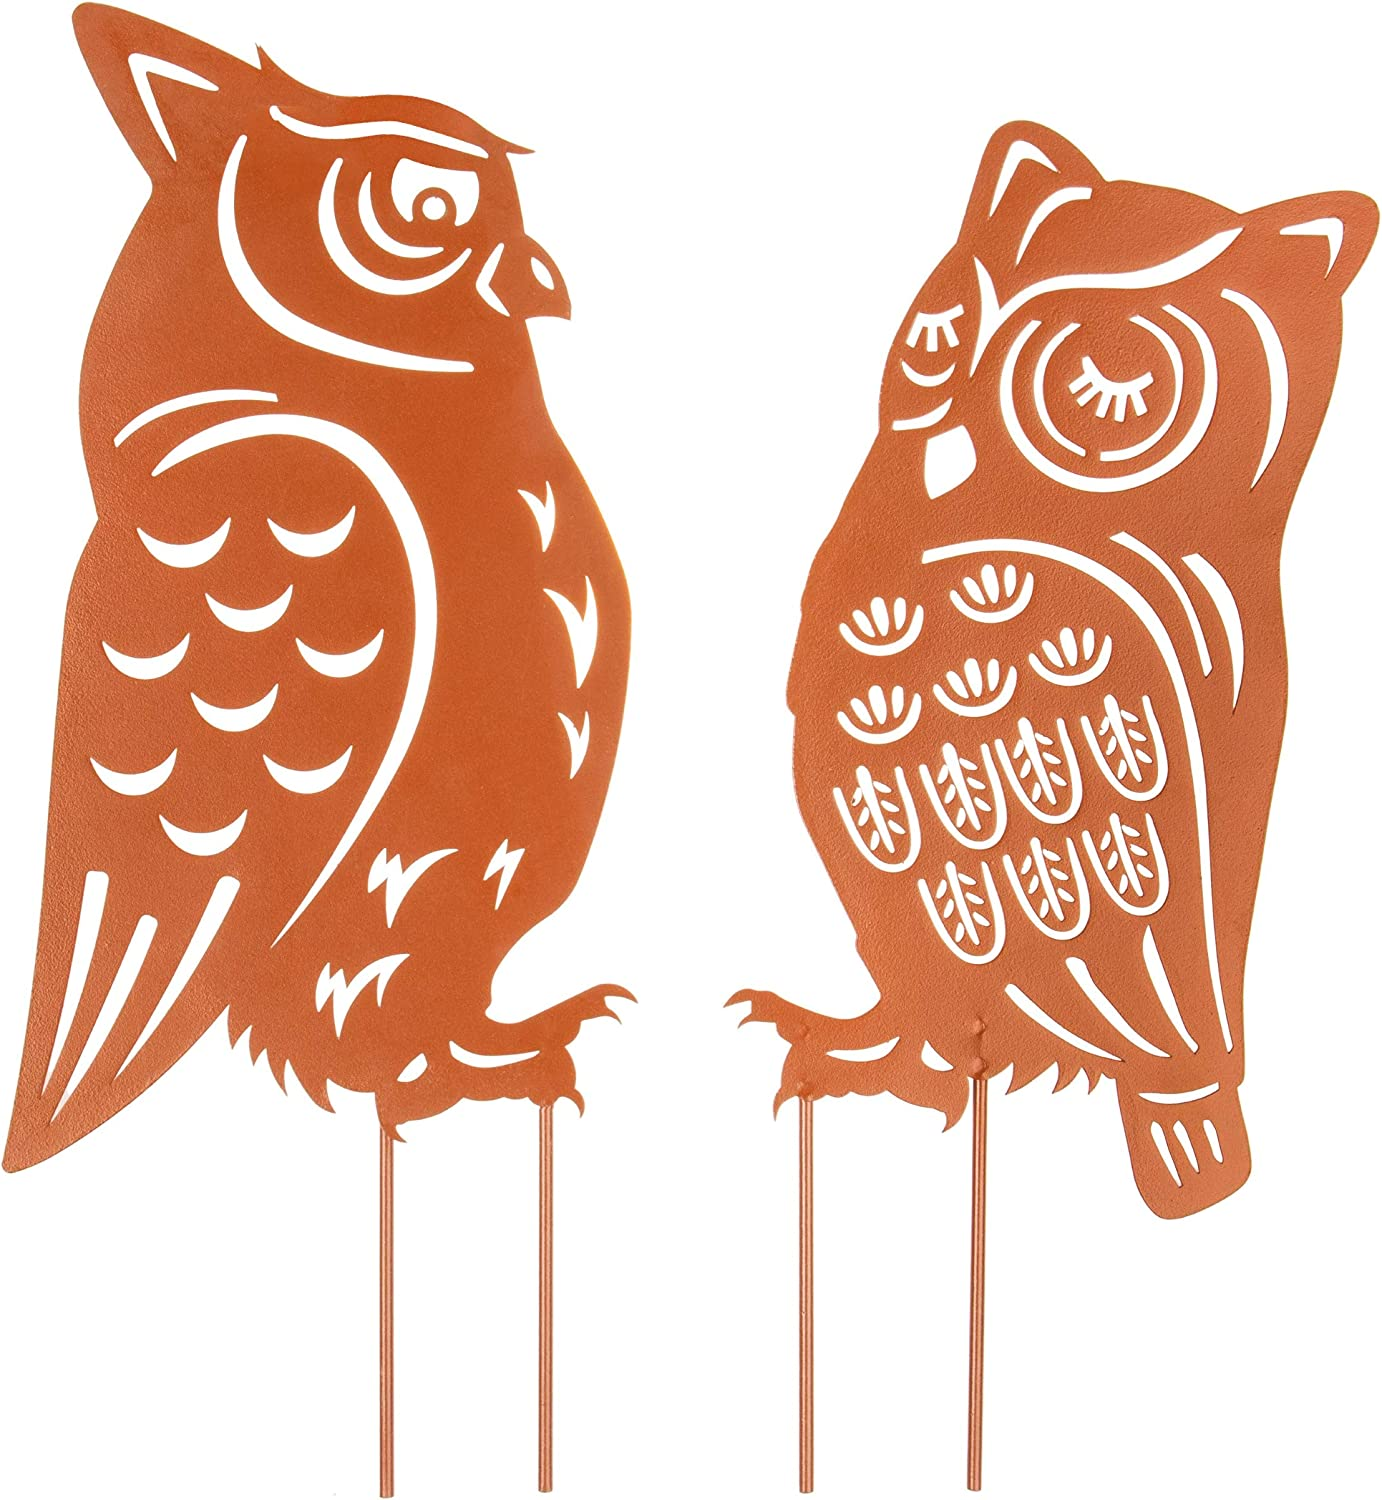 Homarden Metal Animal Yard Decor - Owl Shaped Garden Art for Outside Decorations - Outdoor Decorative Stake Accessories and Lawn Ornaments - Ornamental Gardening Stakes for Decoration - 2 Piece Set